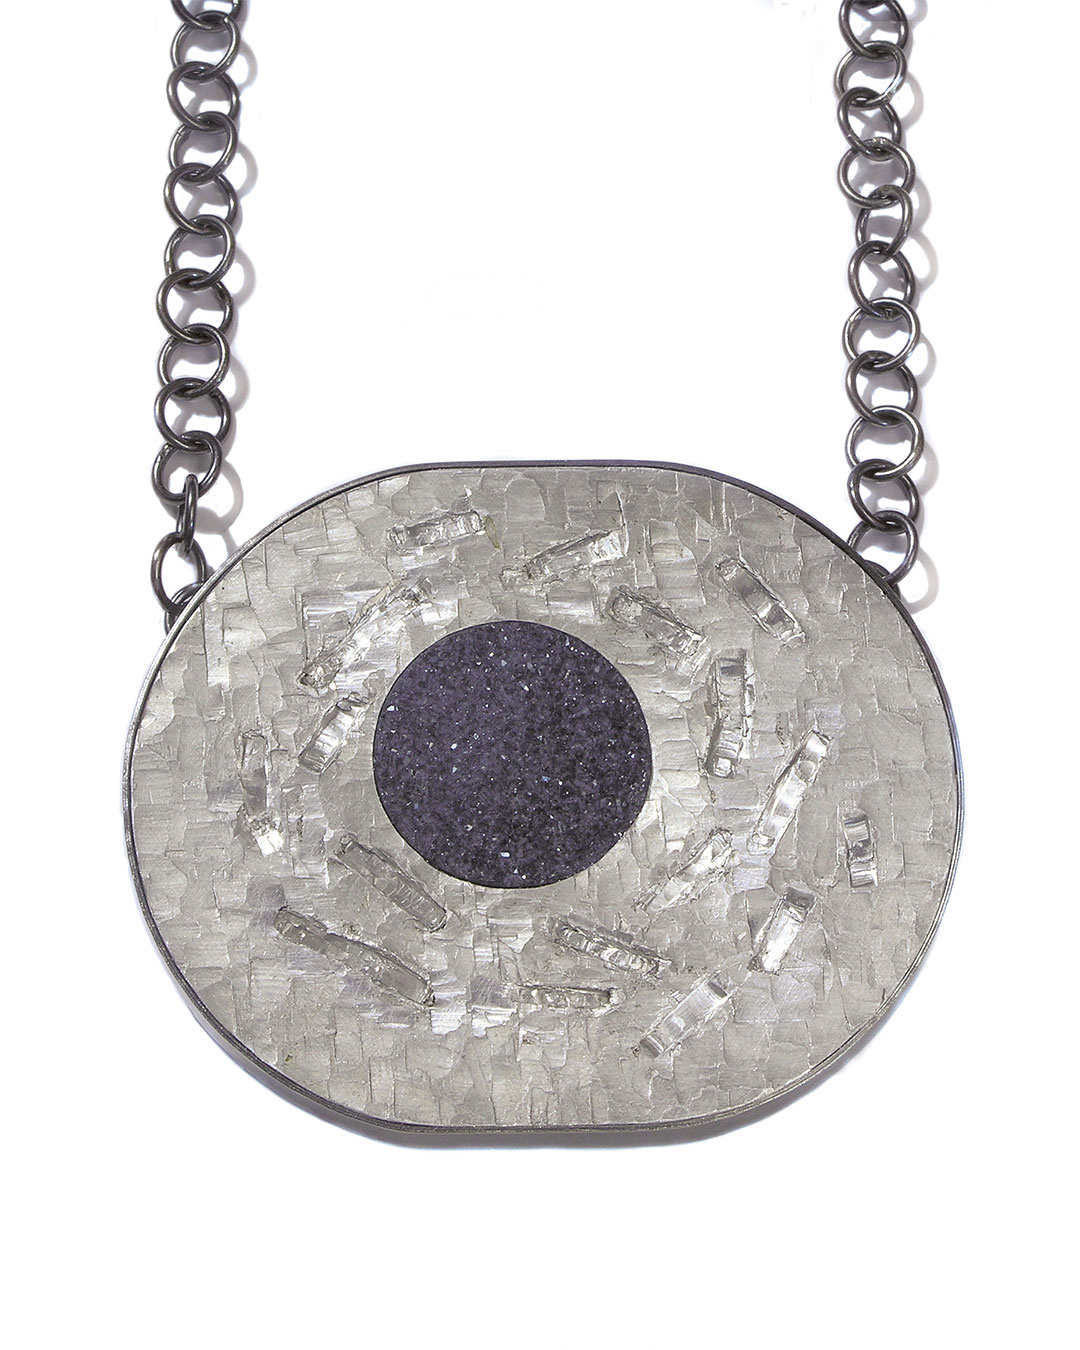 Sybille Richter, See (Lake), 2008, necklace; aluminium, 935 silver, agate, 70 x 60 x 7 mm, €880